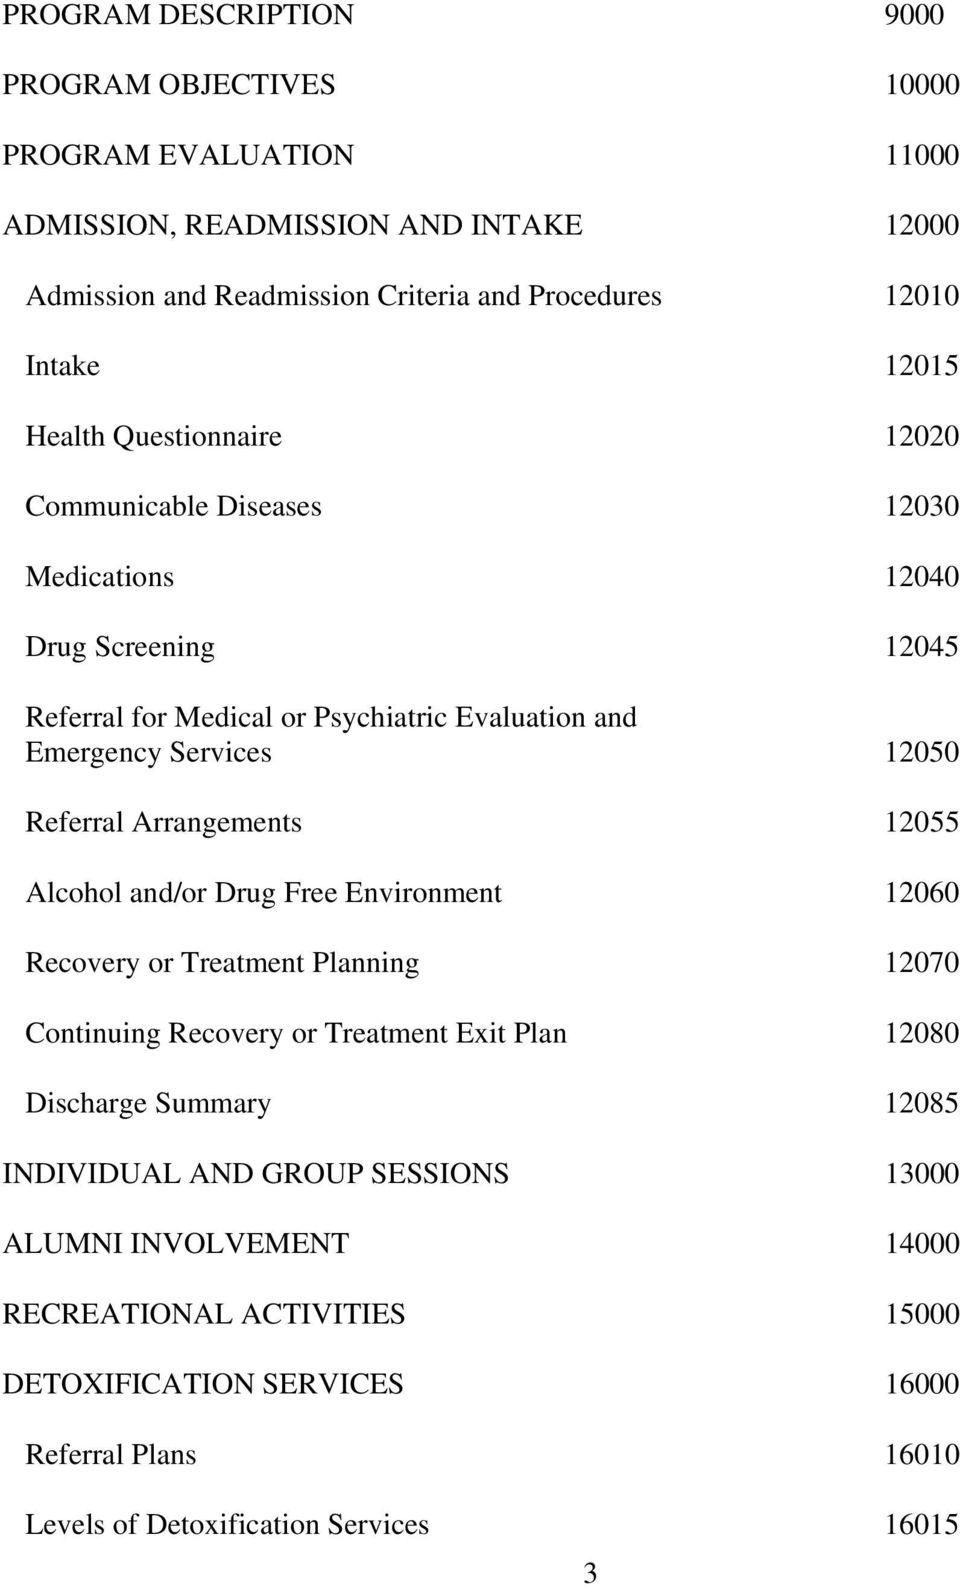 Referral Arrangements 12055 Alcohol and/or Drug Free Environment 12060 Recovery or Treatment Planning 12070 Continuing Recovery or Treatment Exit Plan 12080 Discharge Summary